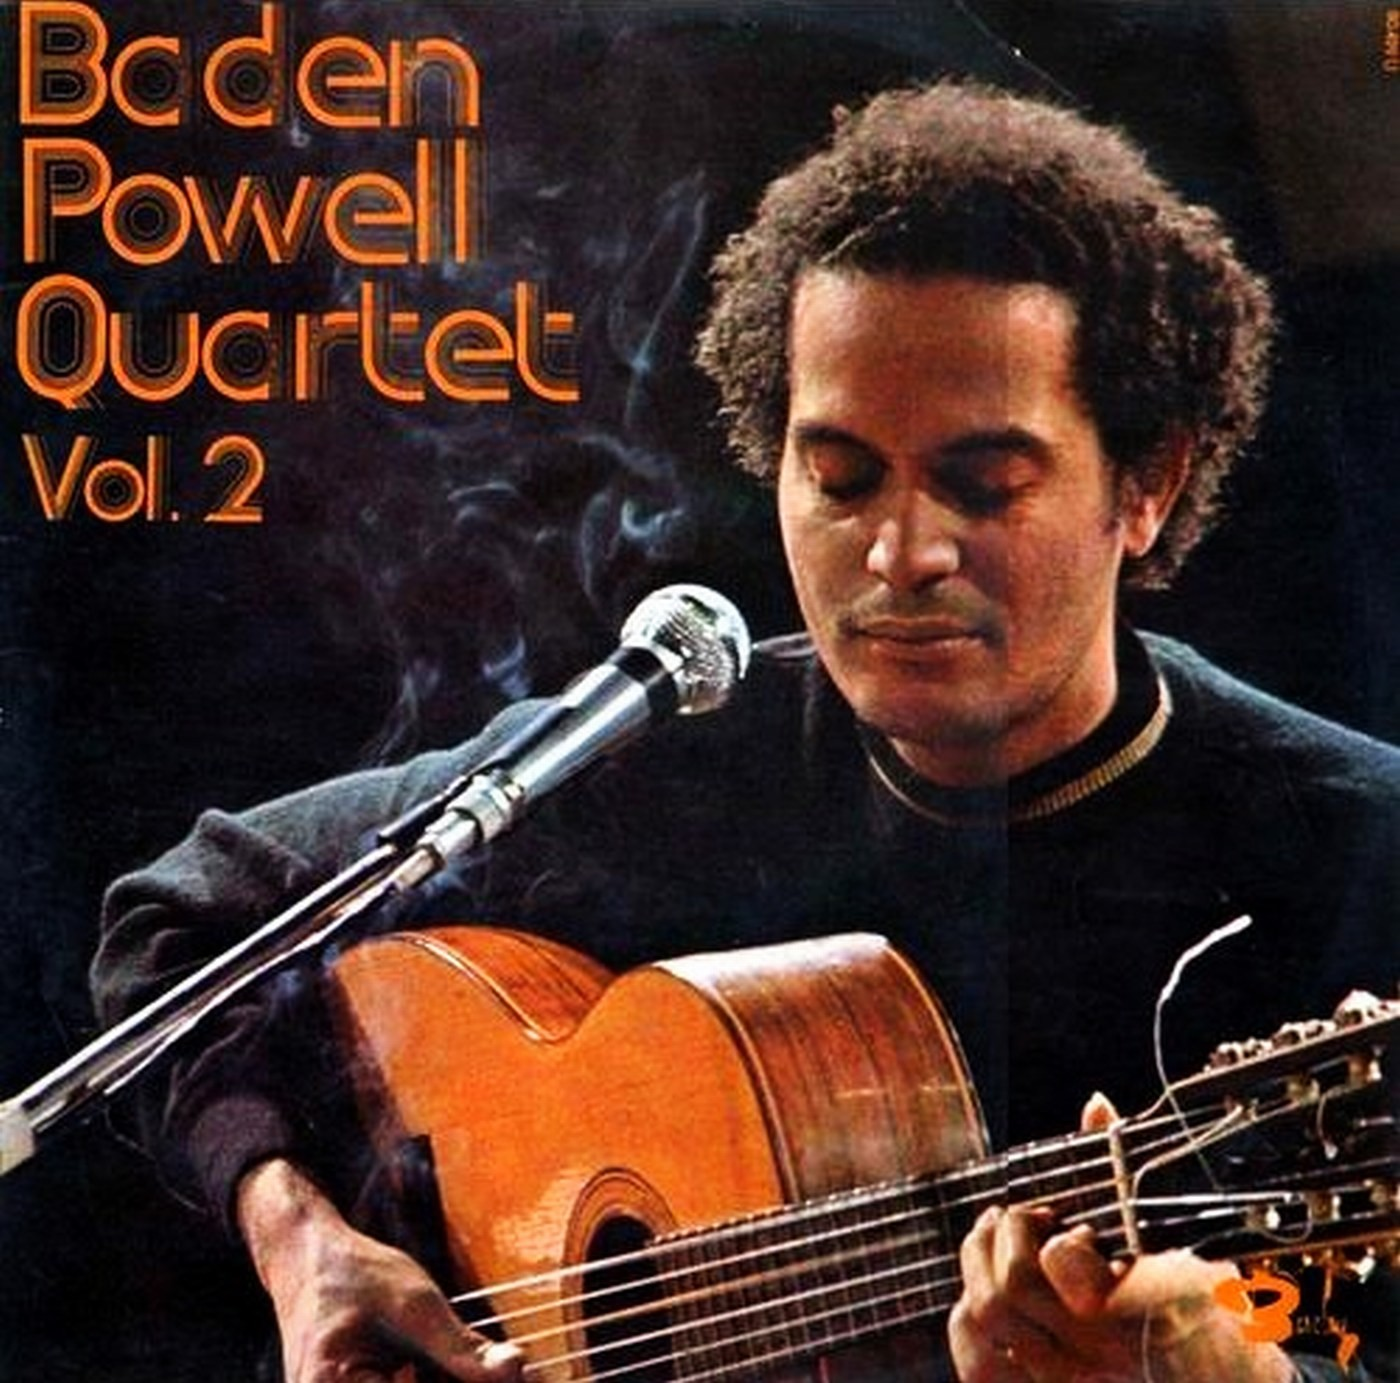 Baden Powell Quartet Vol 1